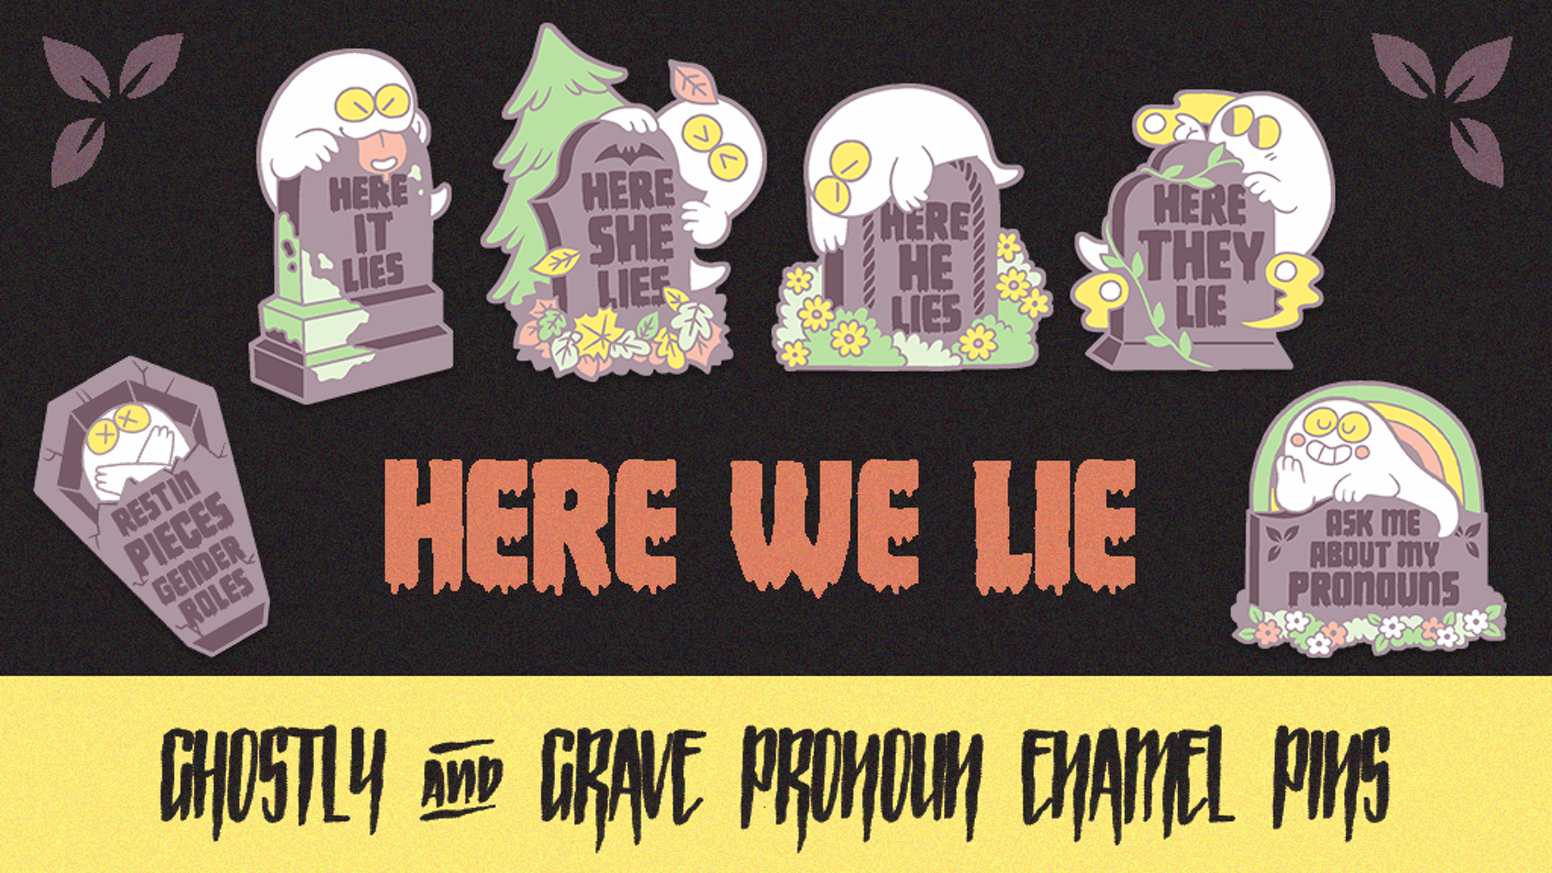 Here We Lie [Ghostly & Grave Pronoun Enamel Pins] by Split Hares